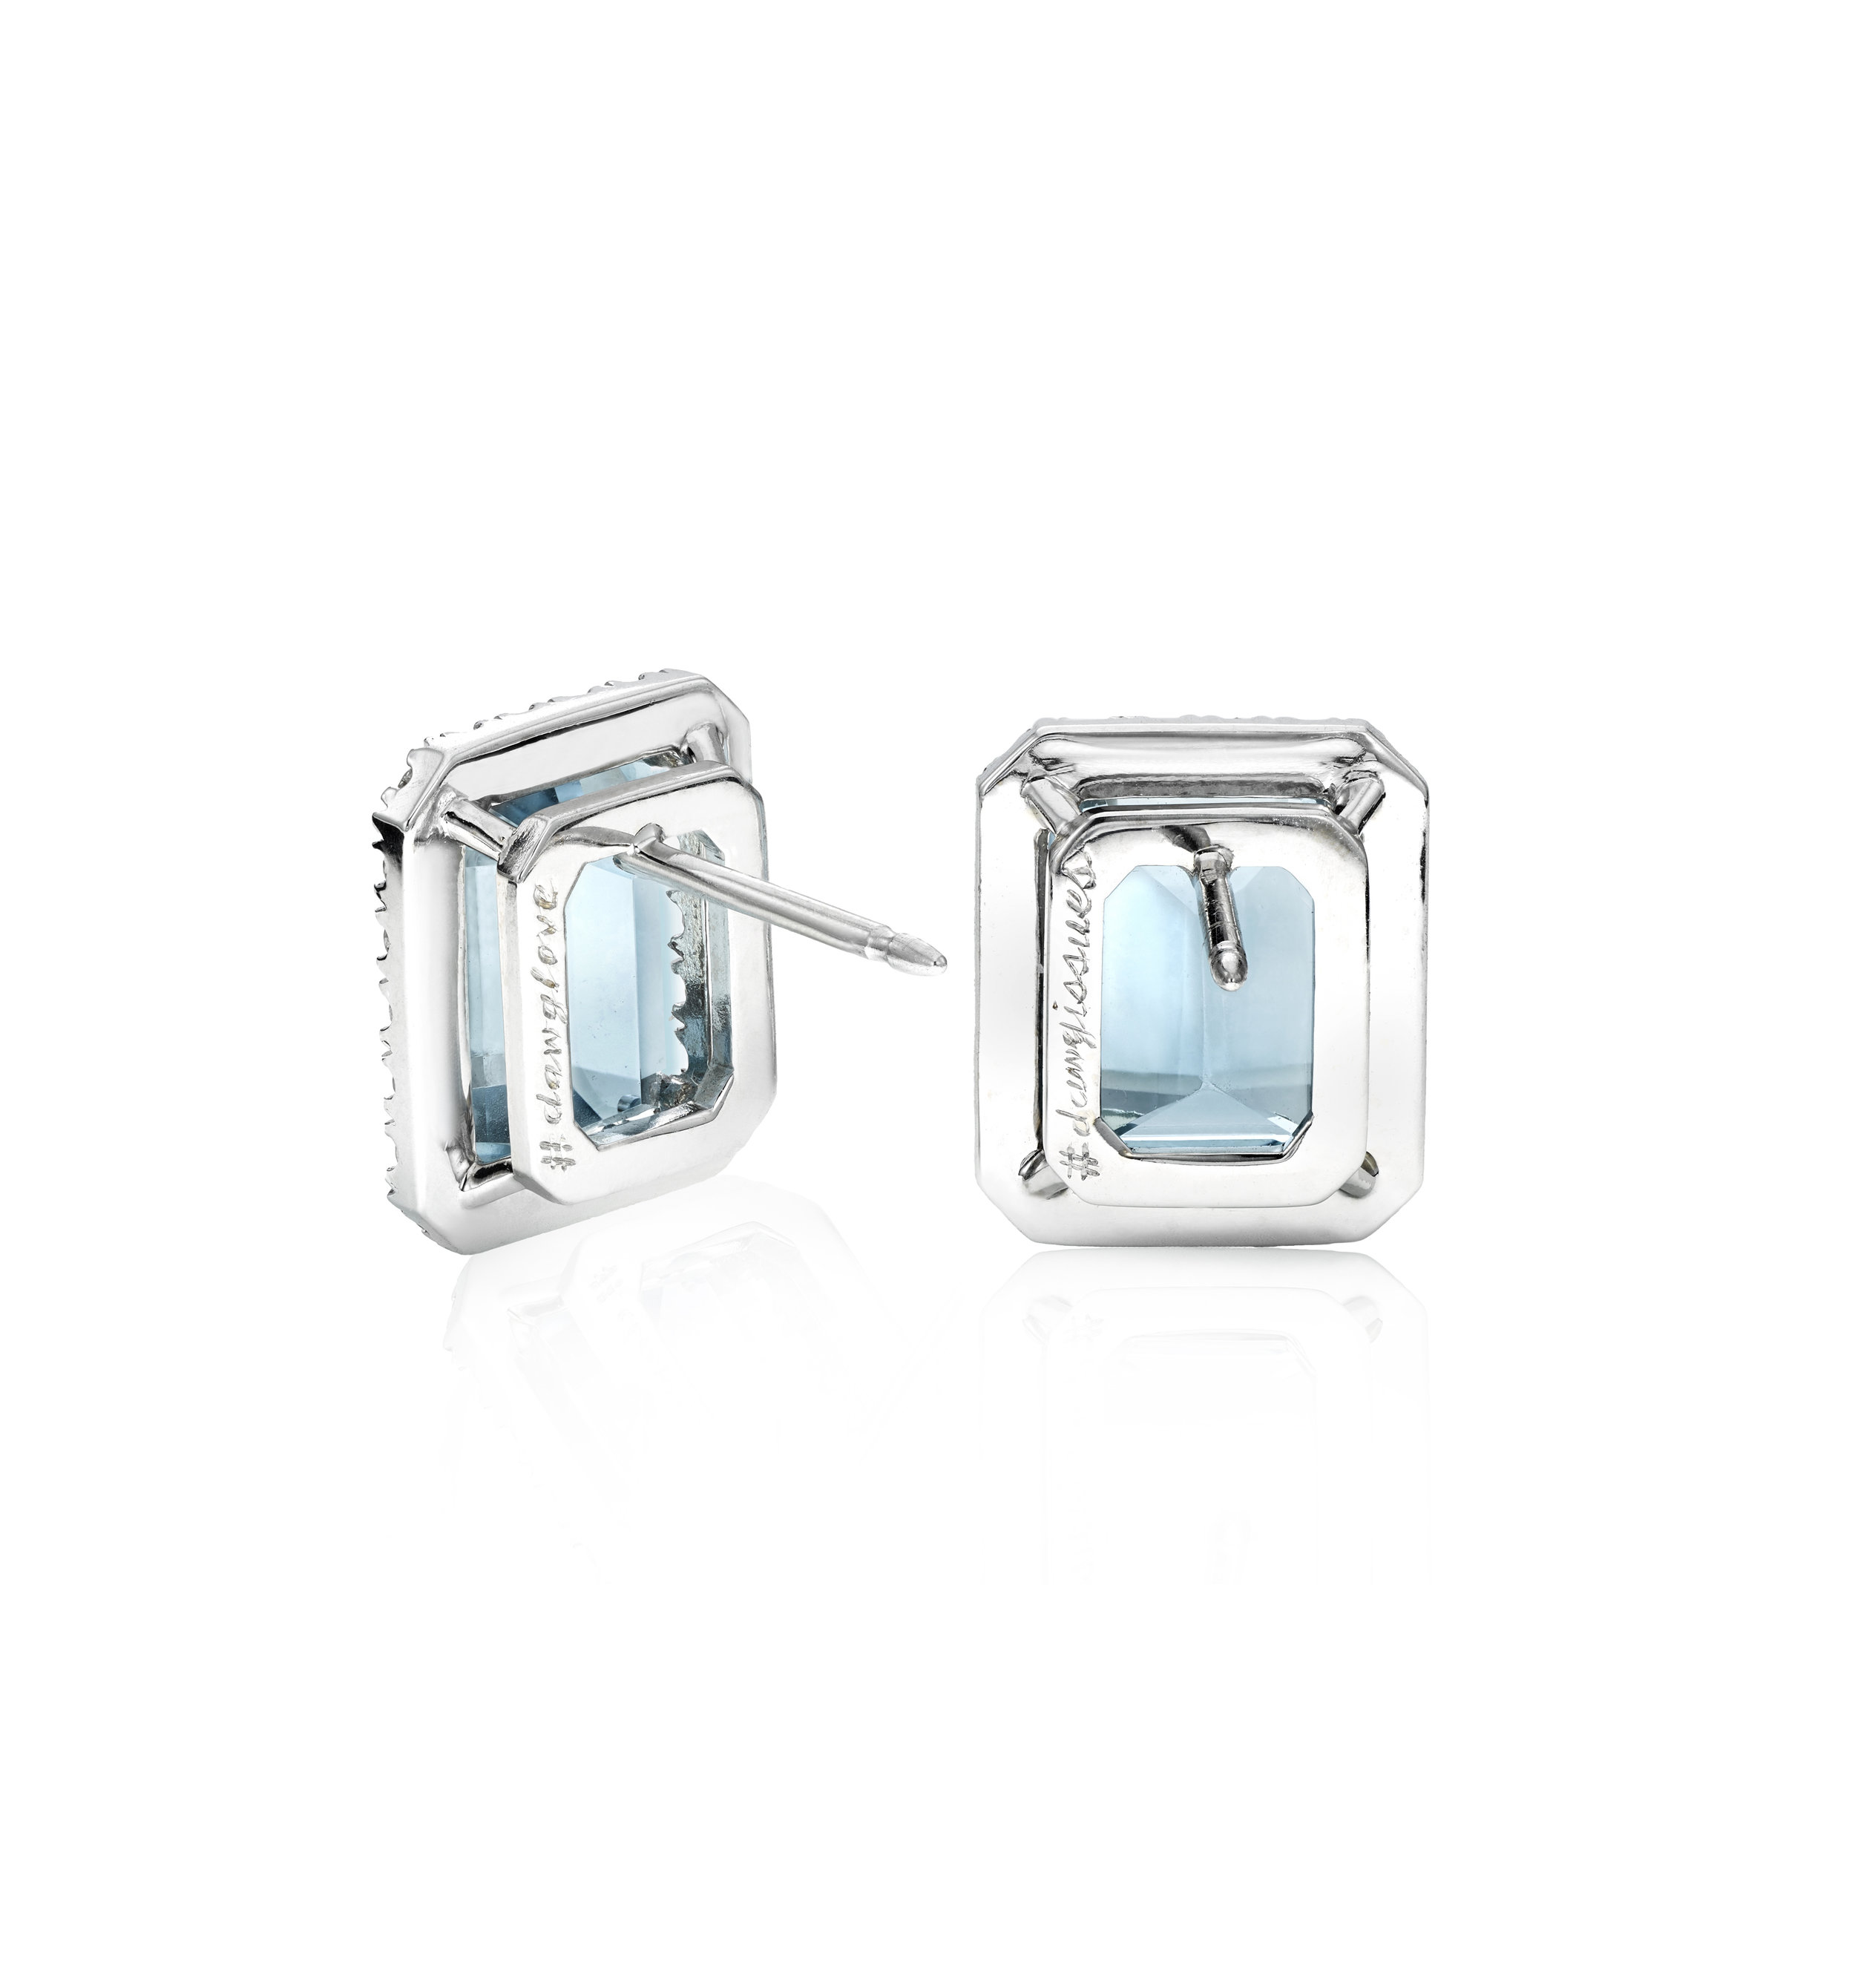 aquamarine earrings Back.jpg